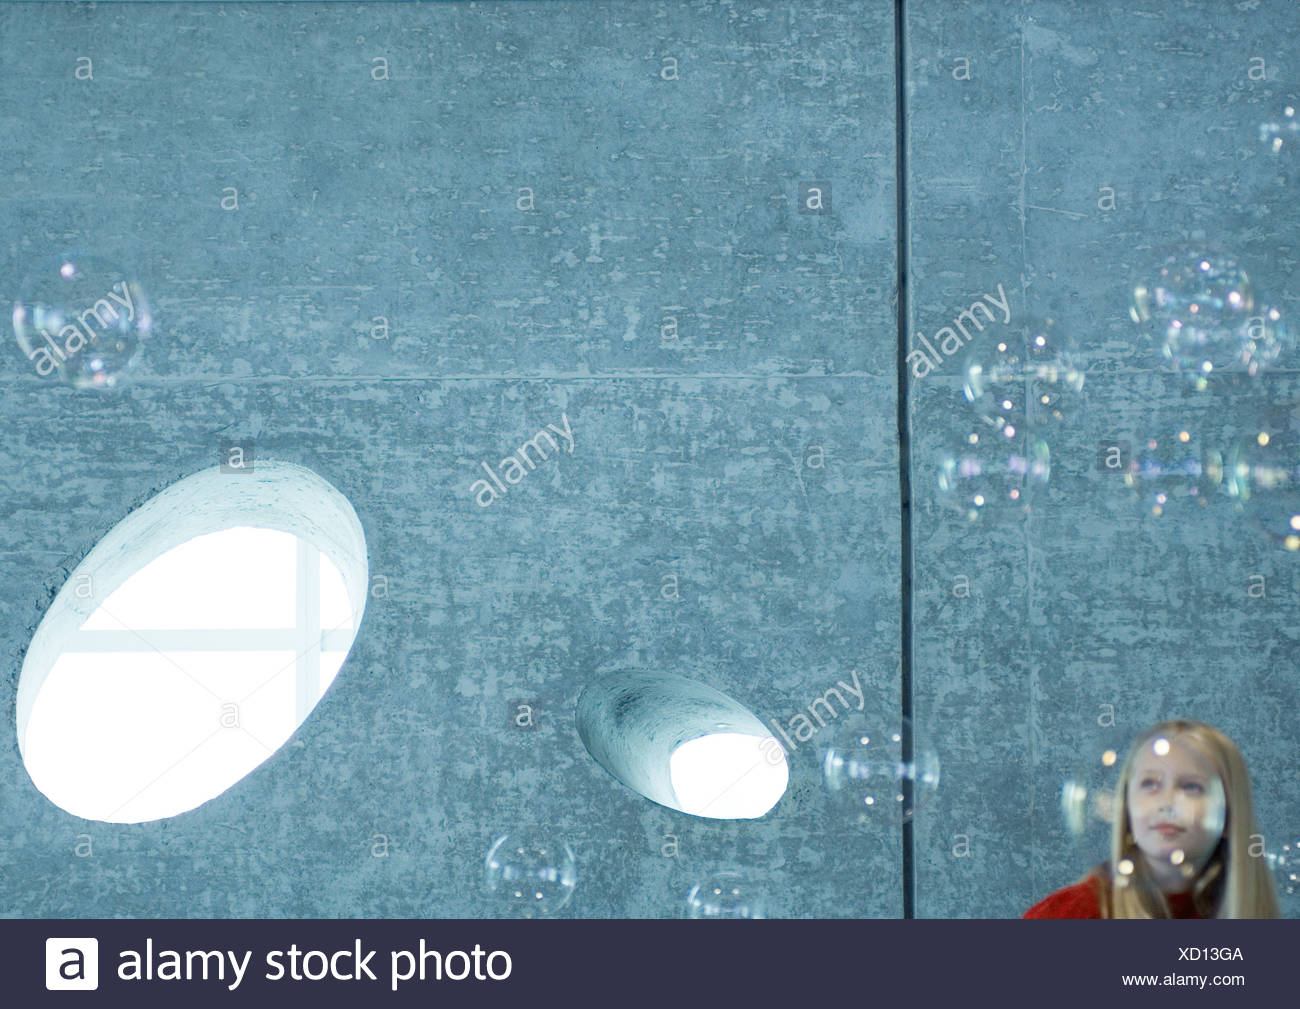 Girl watching bubbles floating in the air - Stock Image